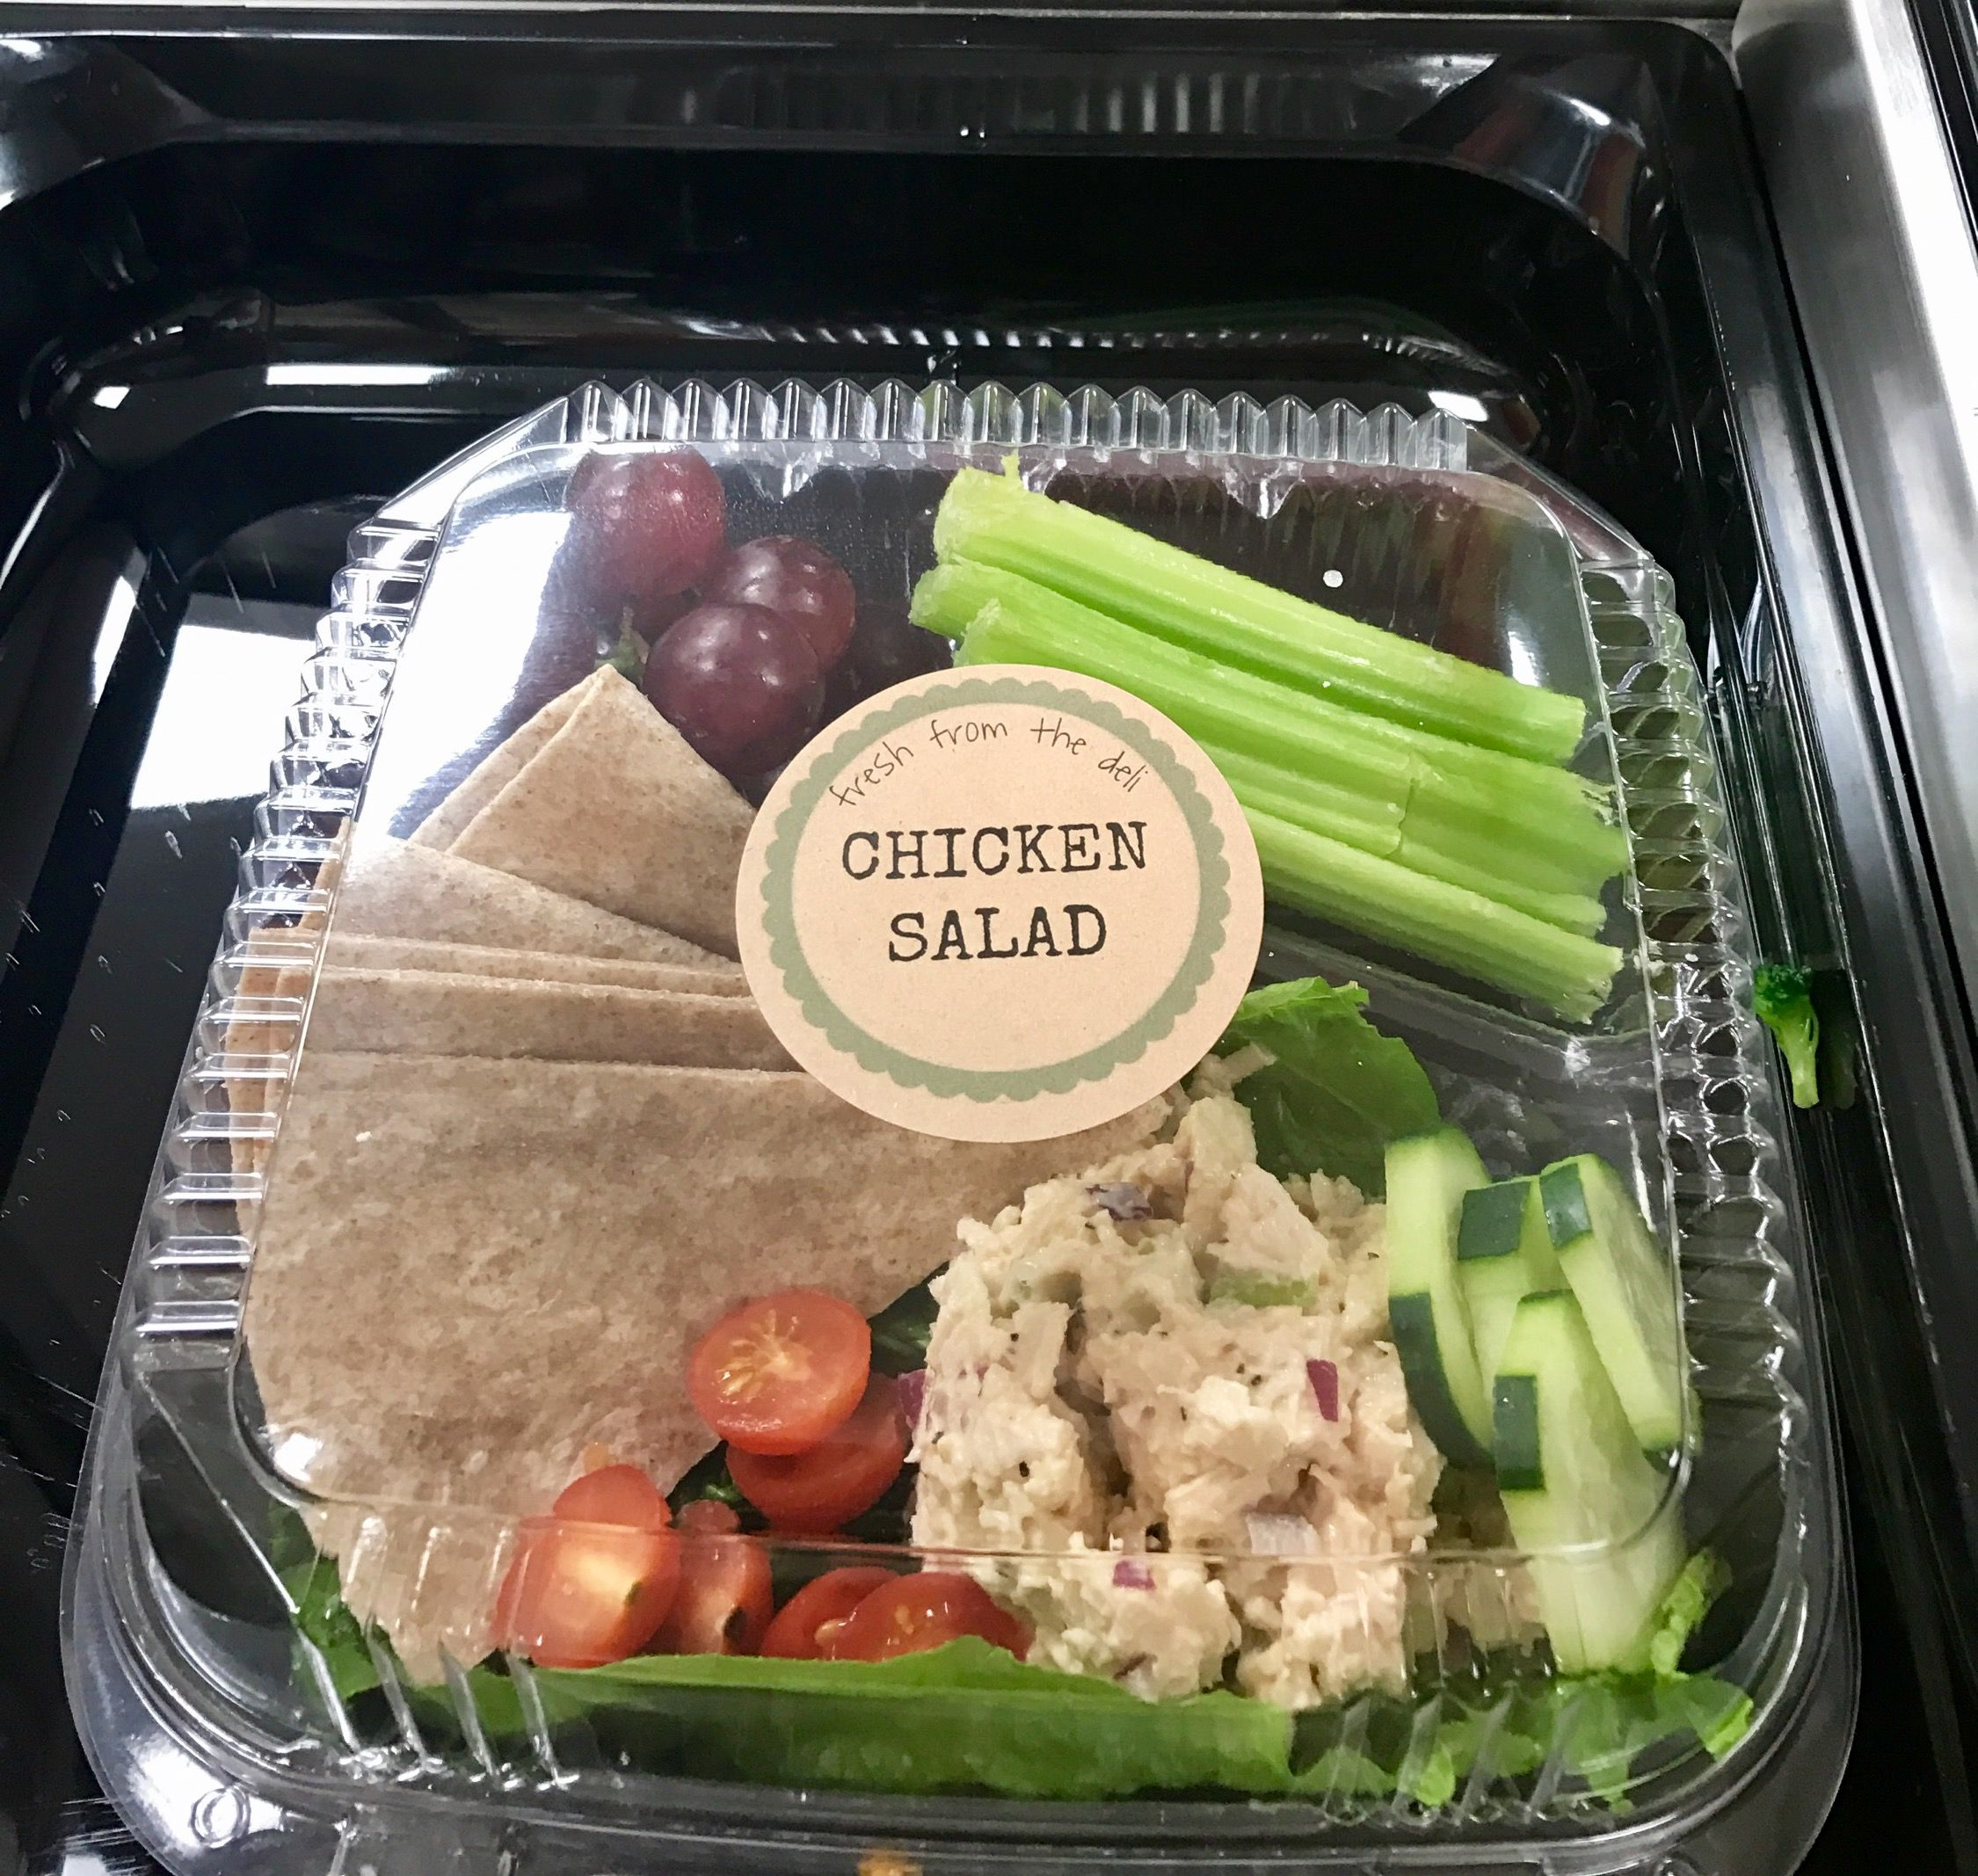 Chicken Salad Plate From Our Food Presentation For School Meals